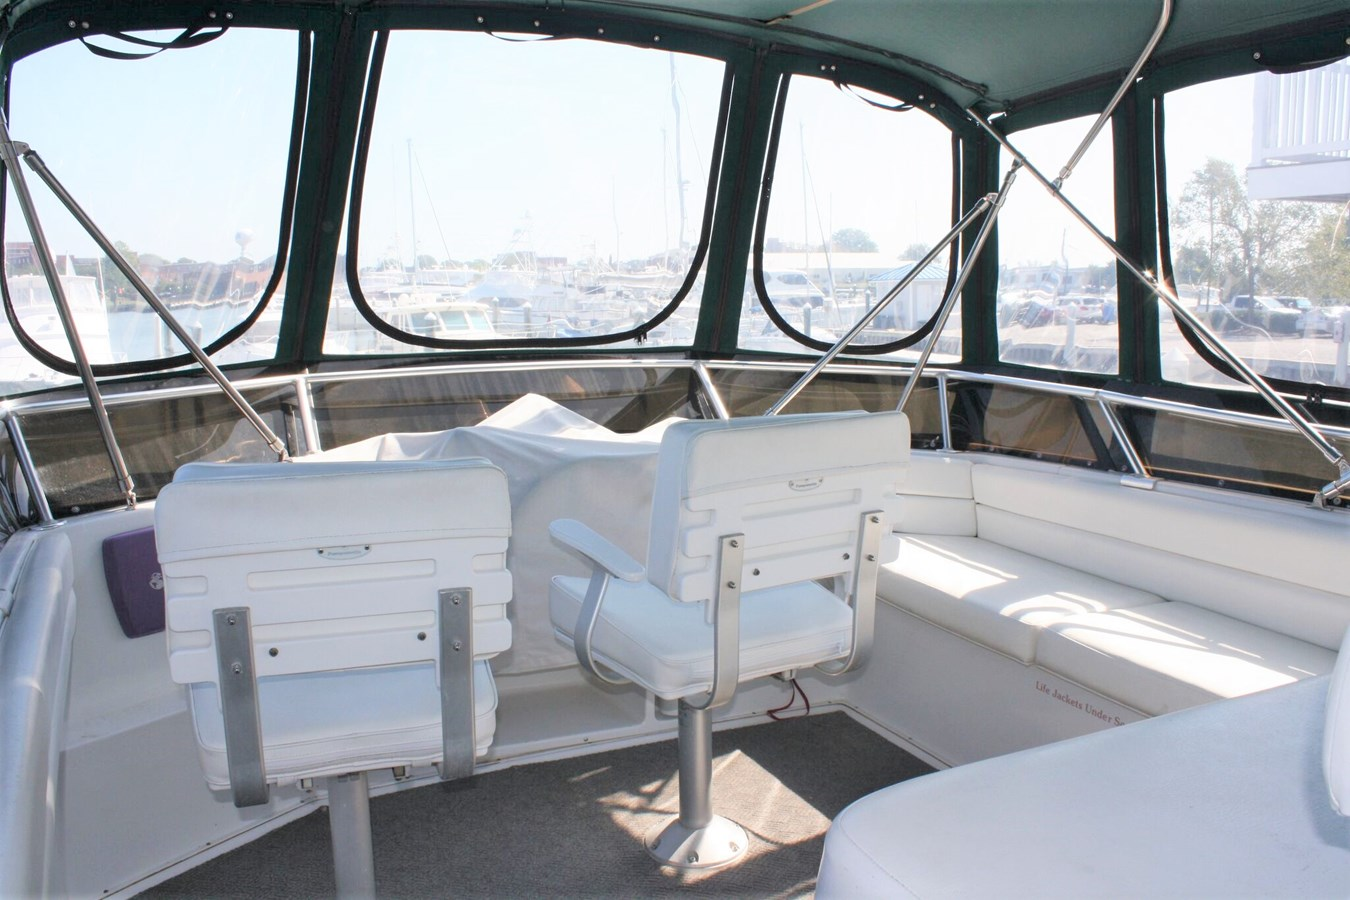 10 - 47 MAINSHIP For Sale